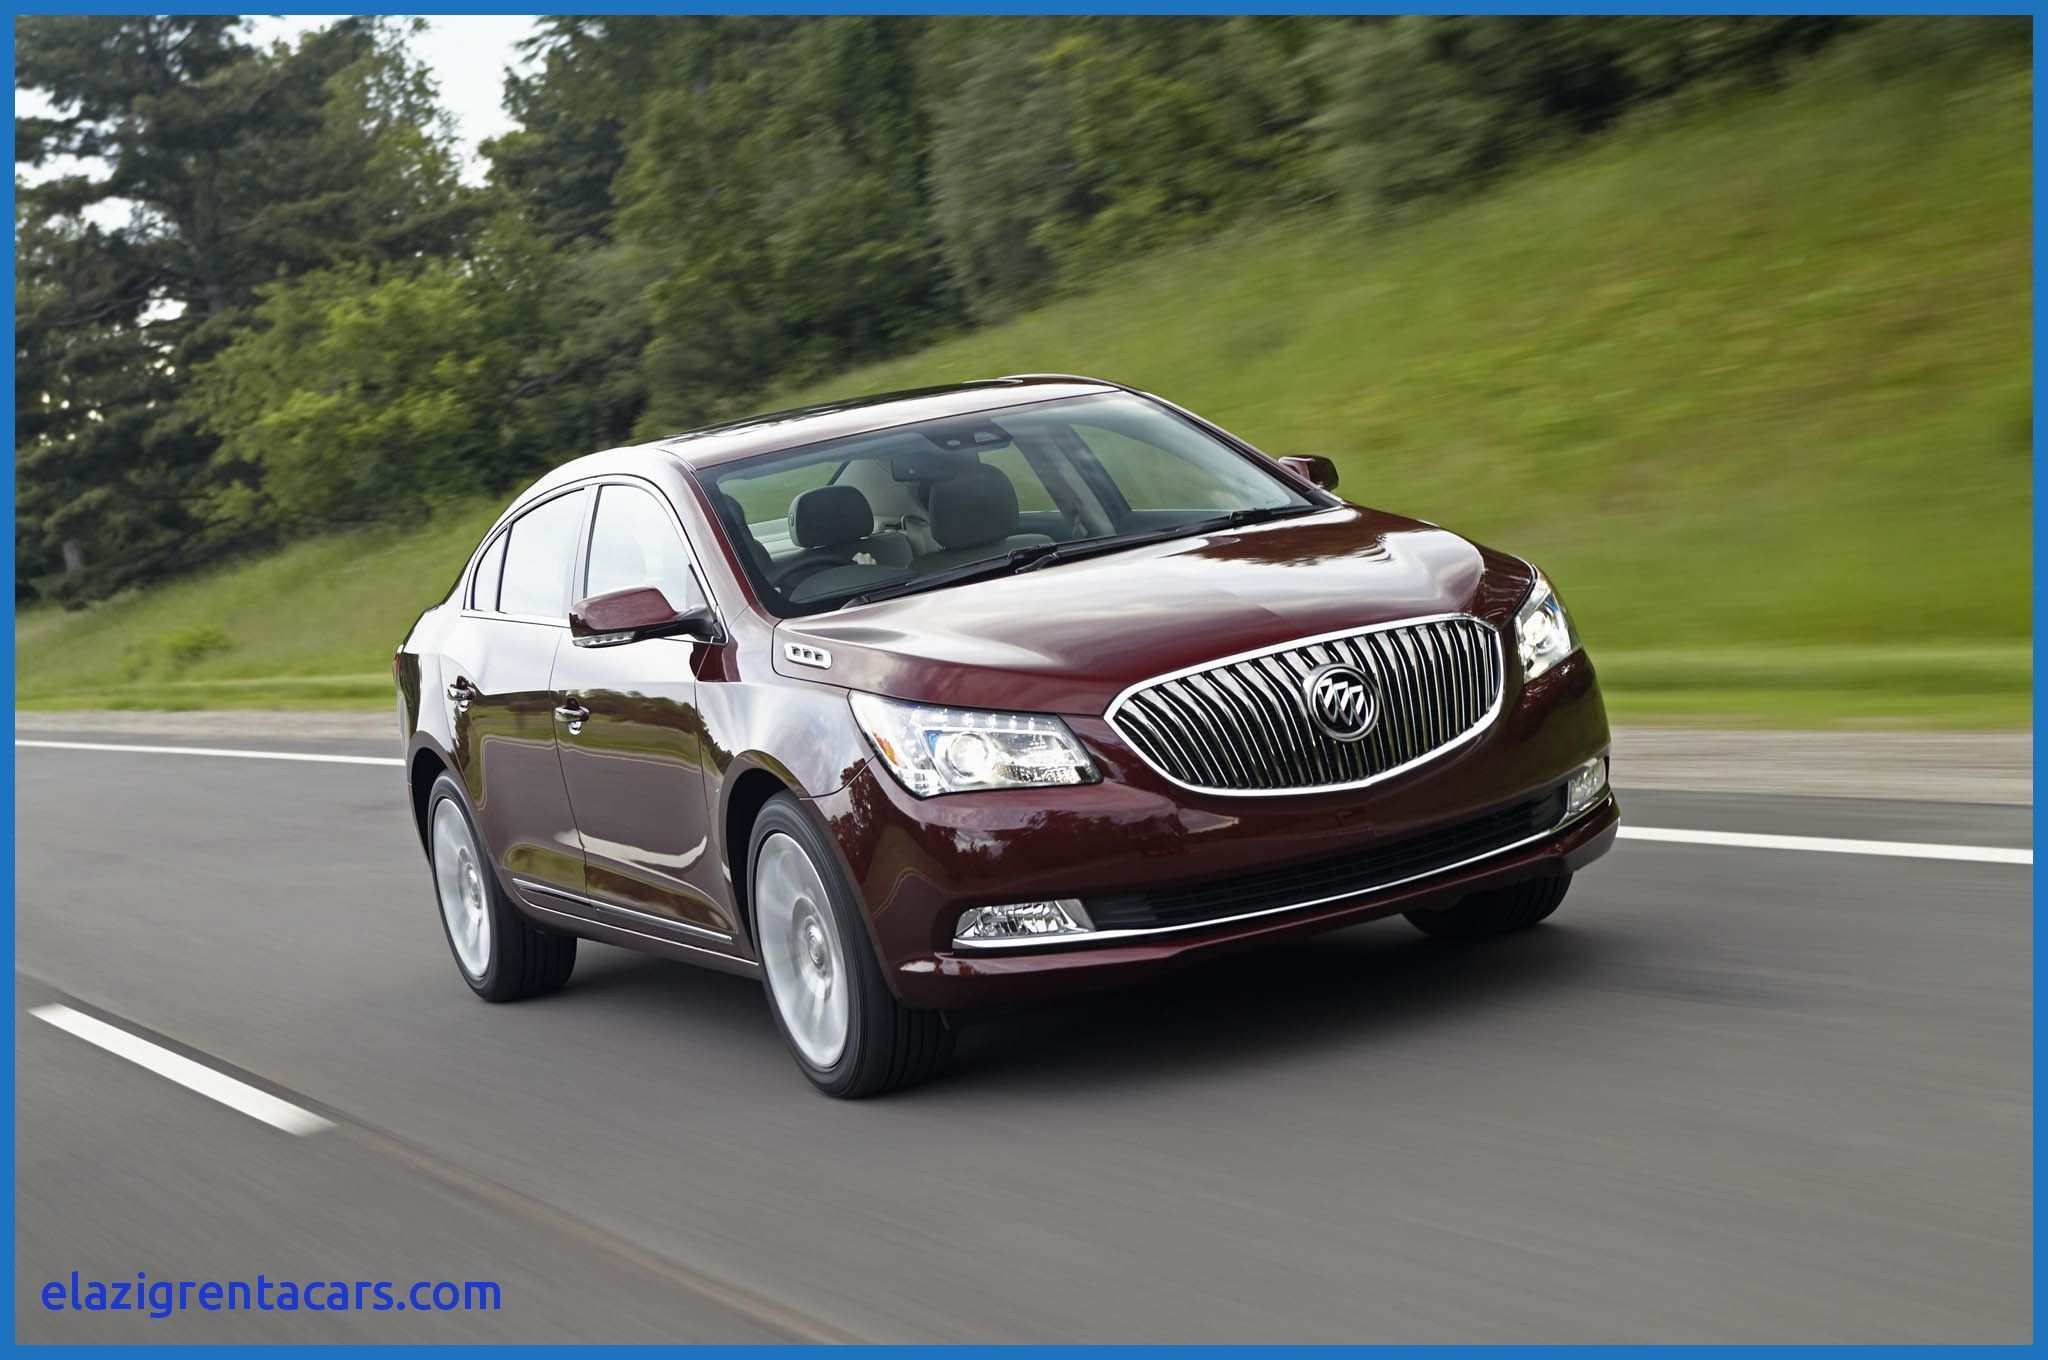 25 New 2019 Buick Enclave Spy Photos Exterior